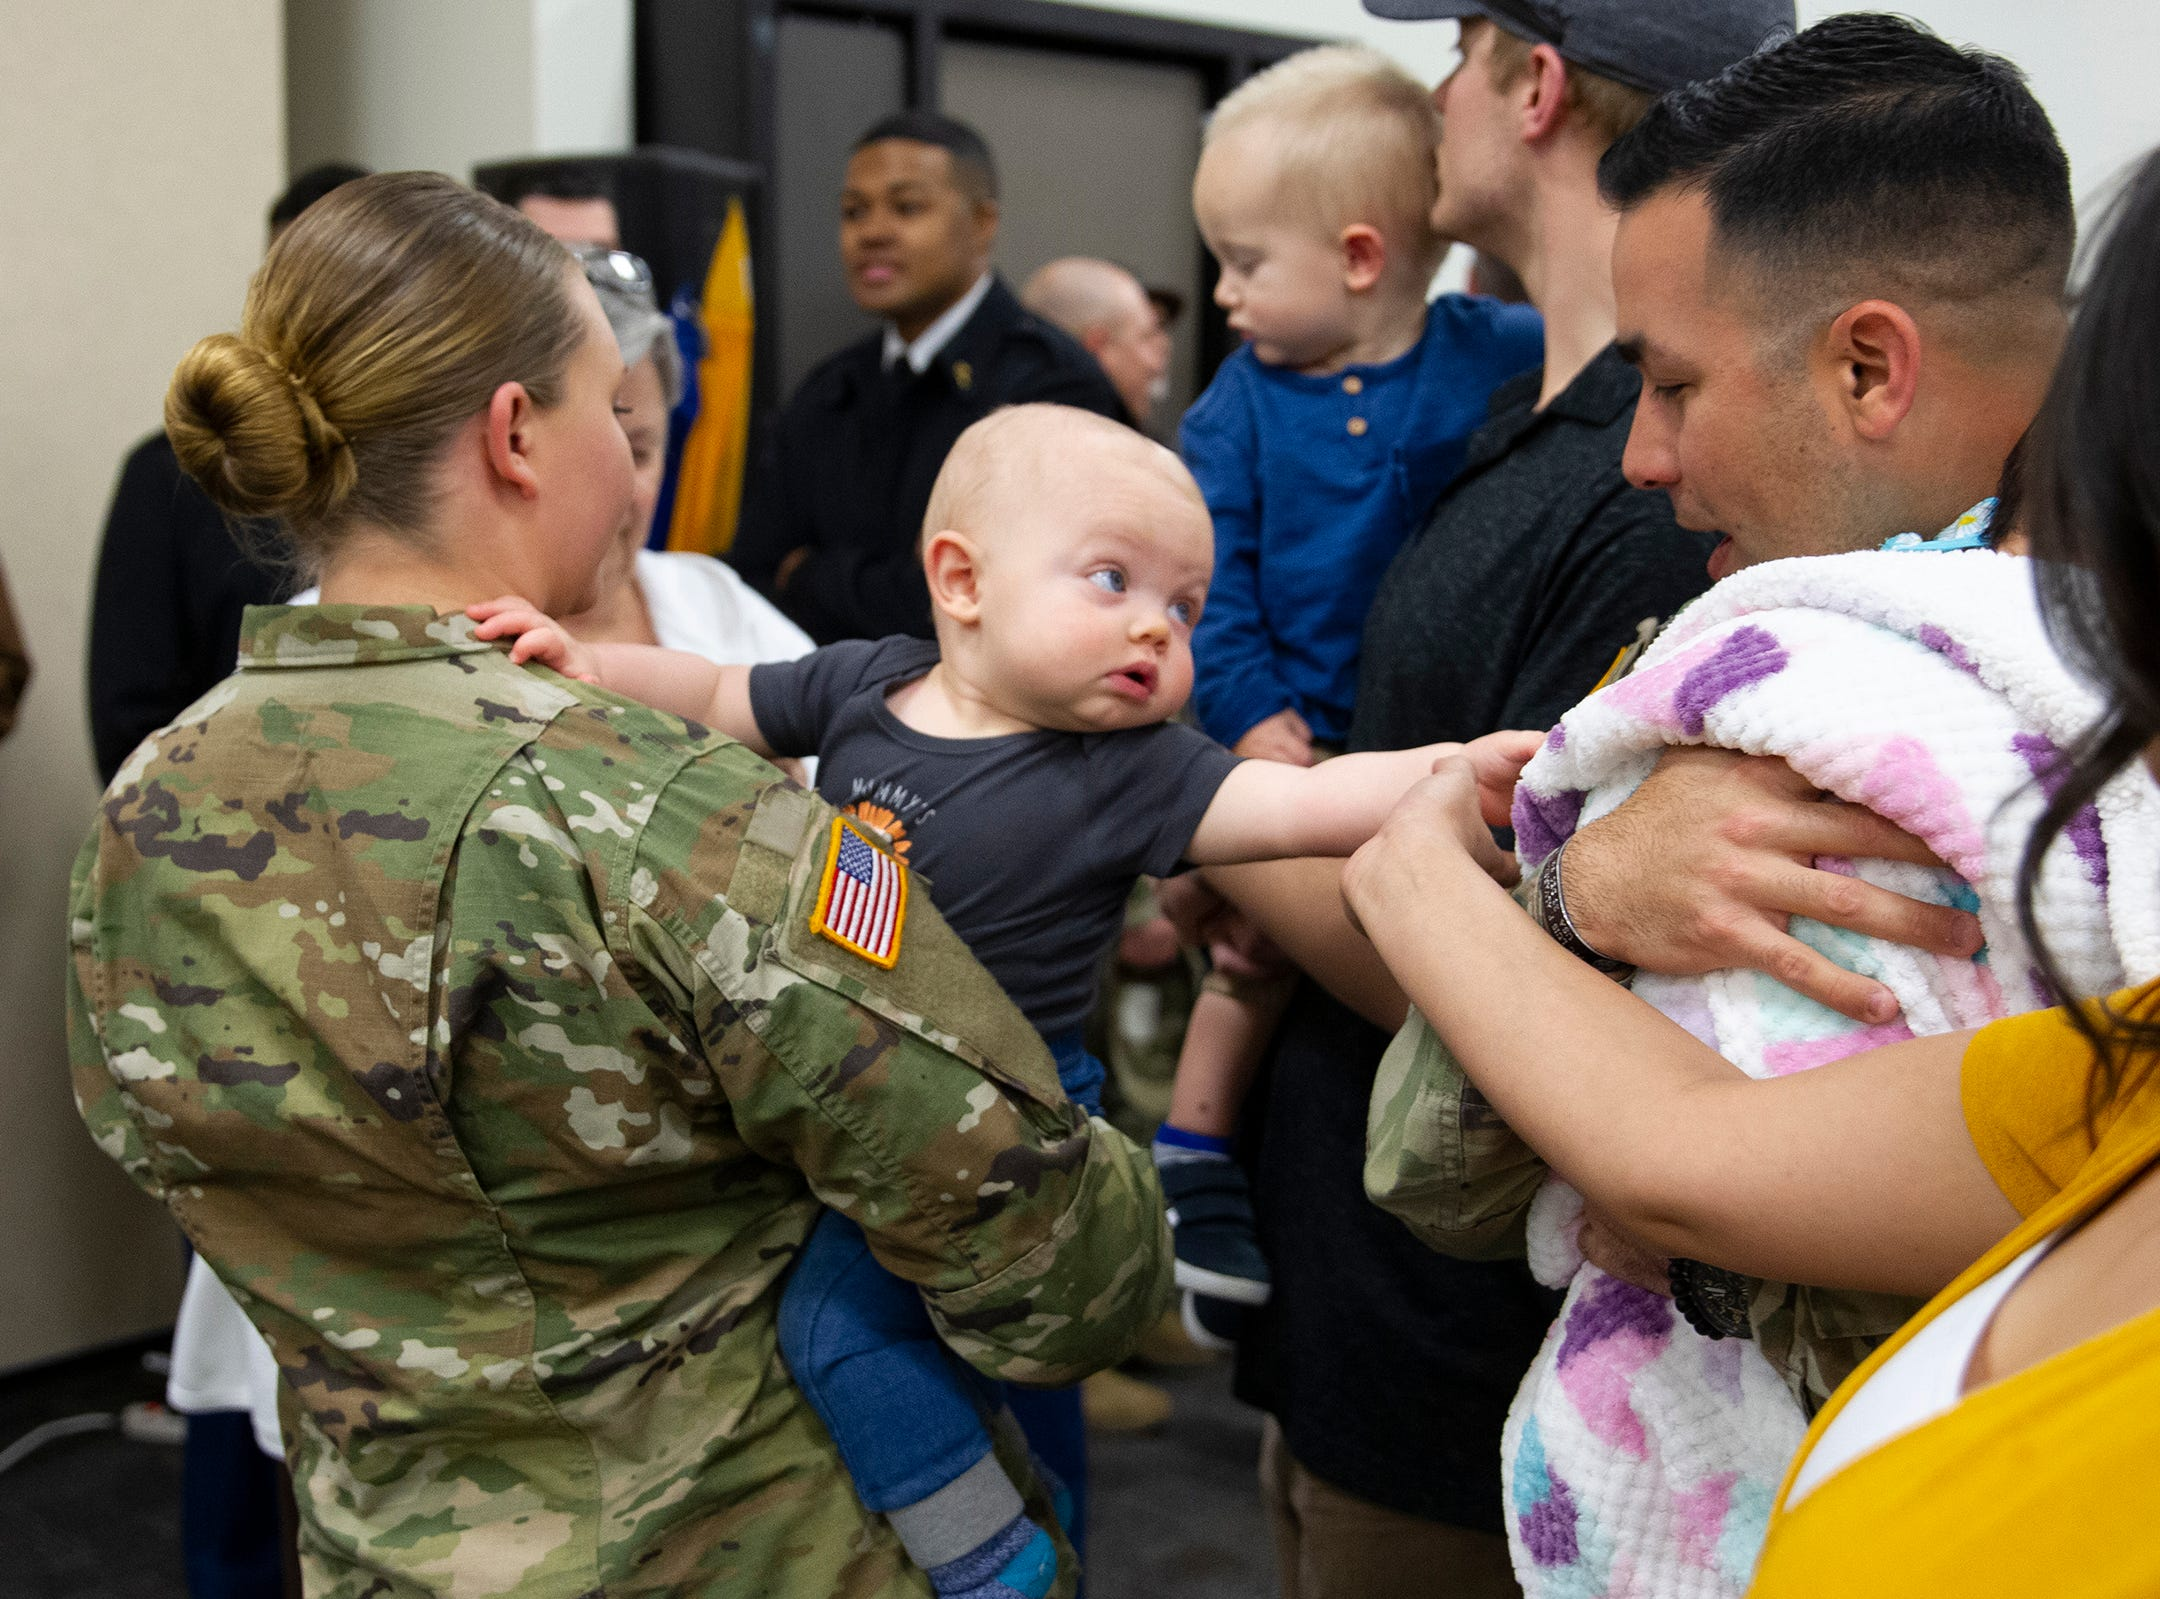 Sgt. Cassidy Presmyk's son Logan reaches out to another military baby before the deployment ceremony for the 253rd Engineer Battalion at Papago Park Military Reservation on Sunday, Feb. 24, 2019.